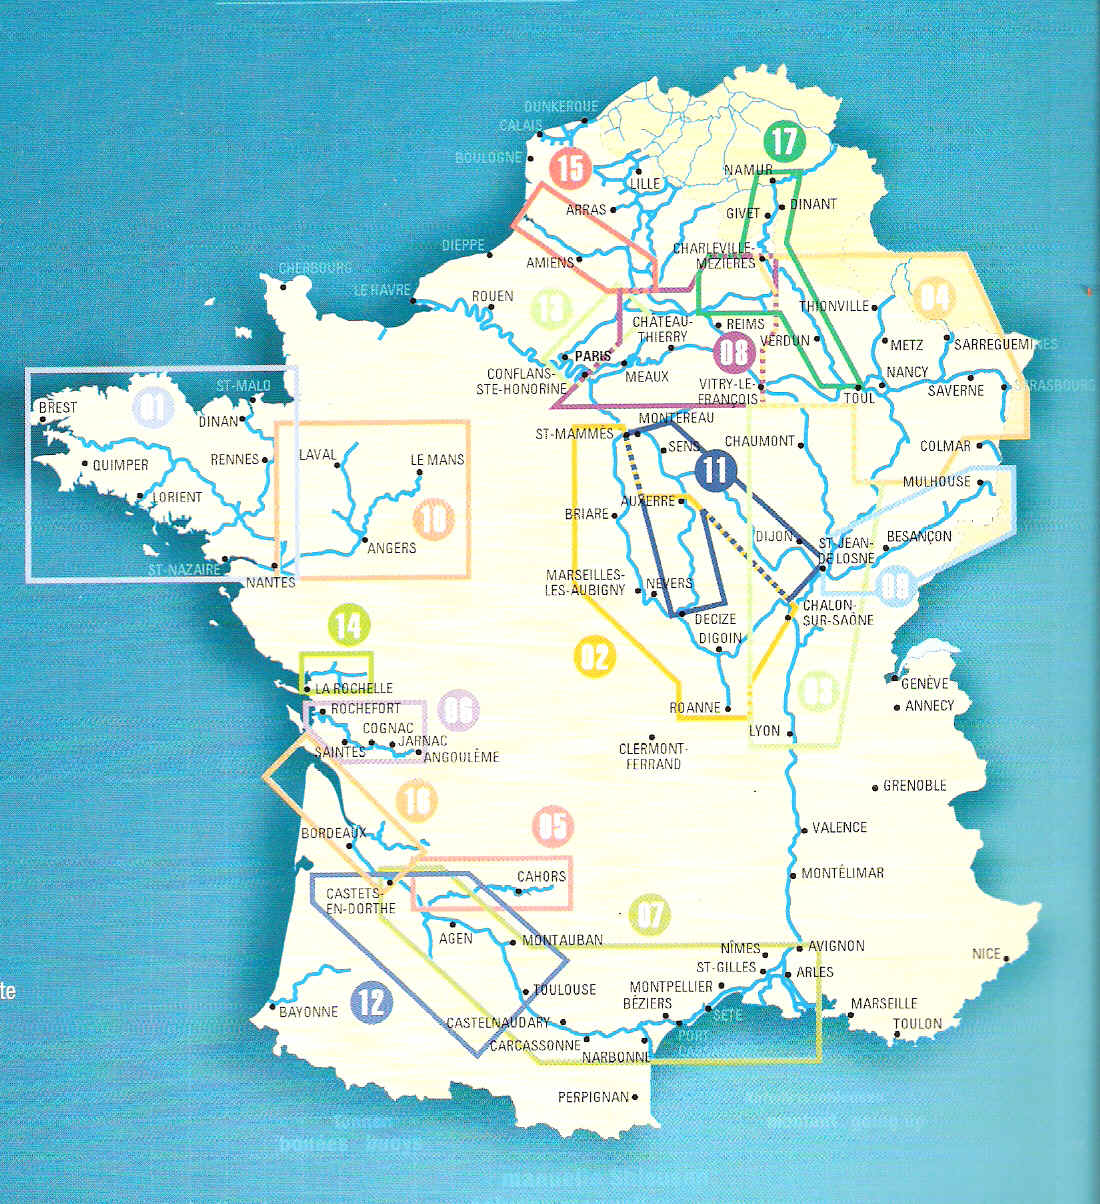 French Canals Map France mappery